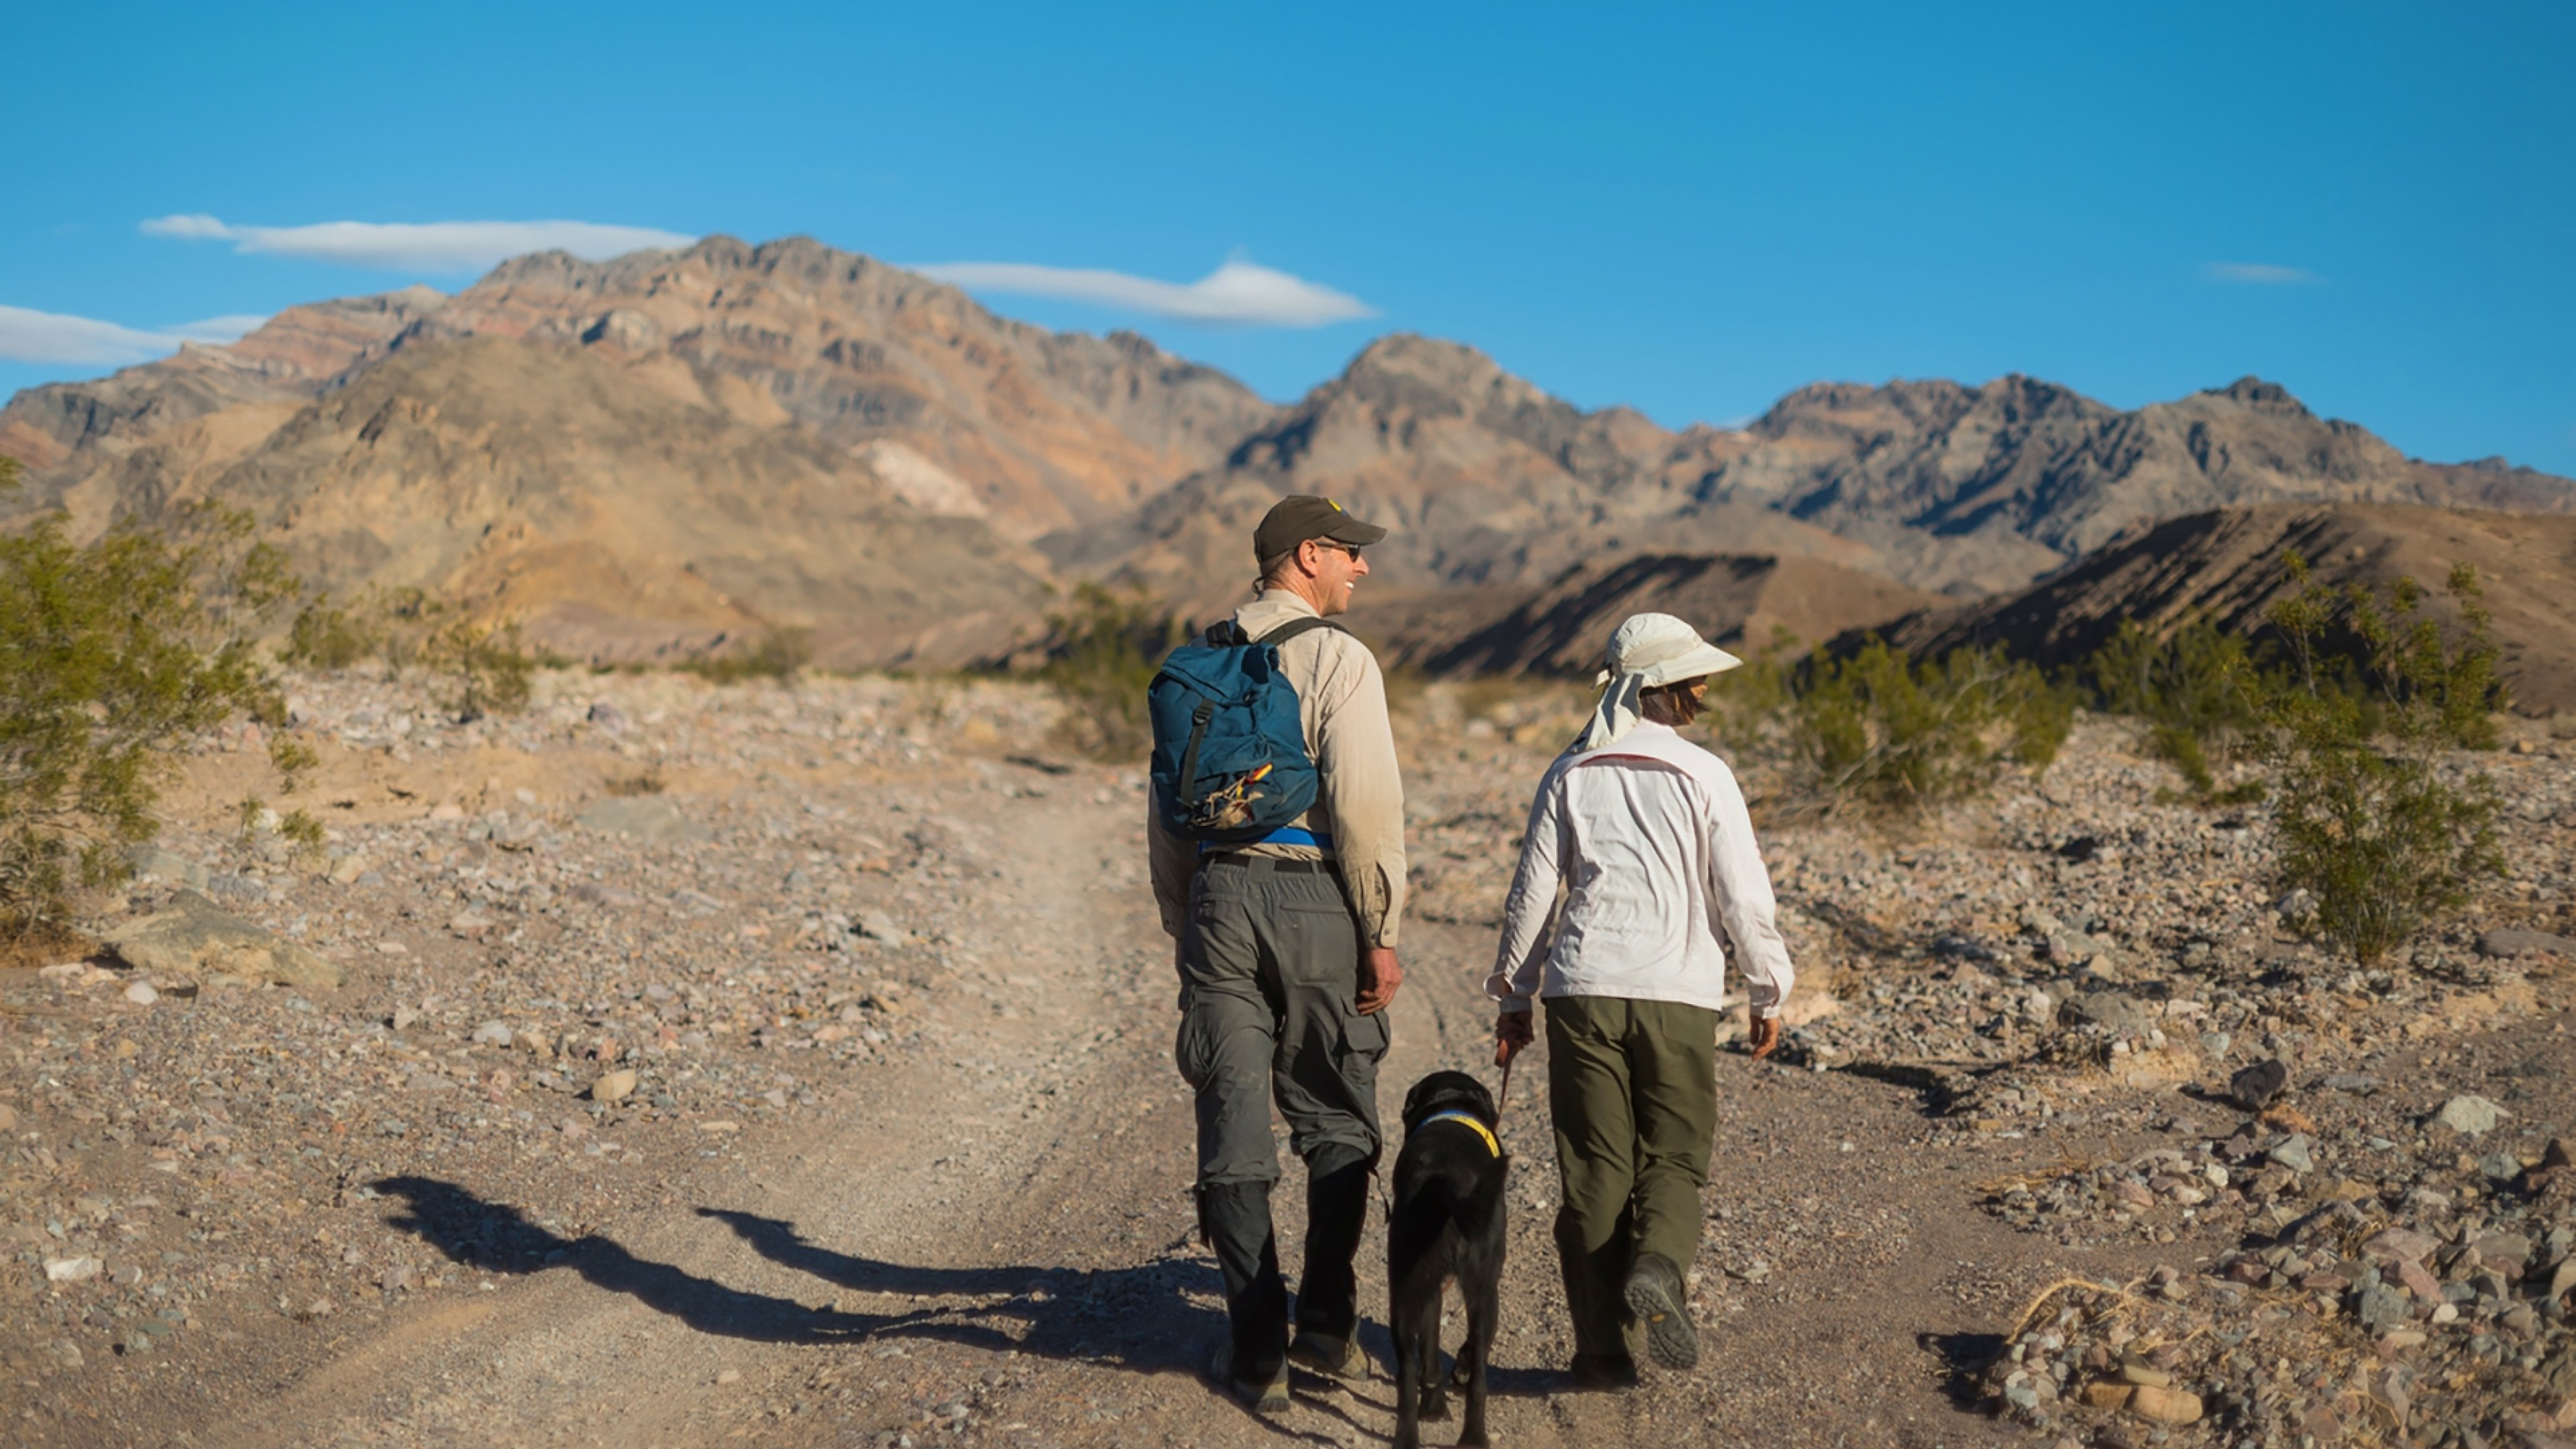 A man and woman with a black Labrador Retriever on an unpaved road, with mountains and a blue sky in the distance.